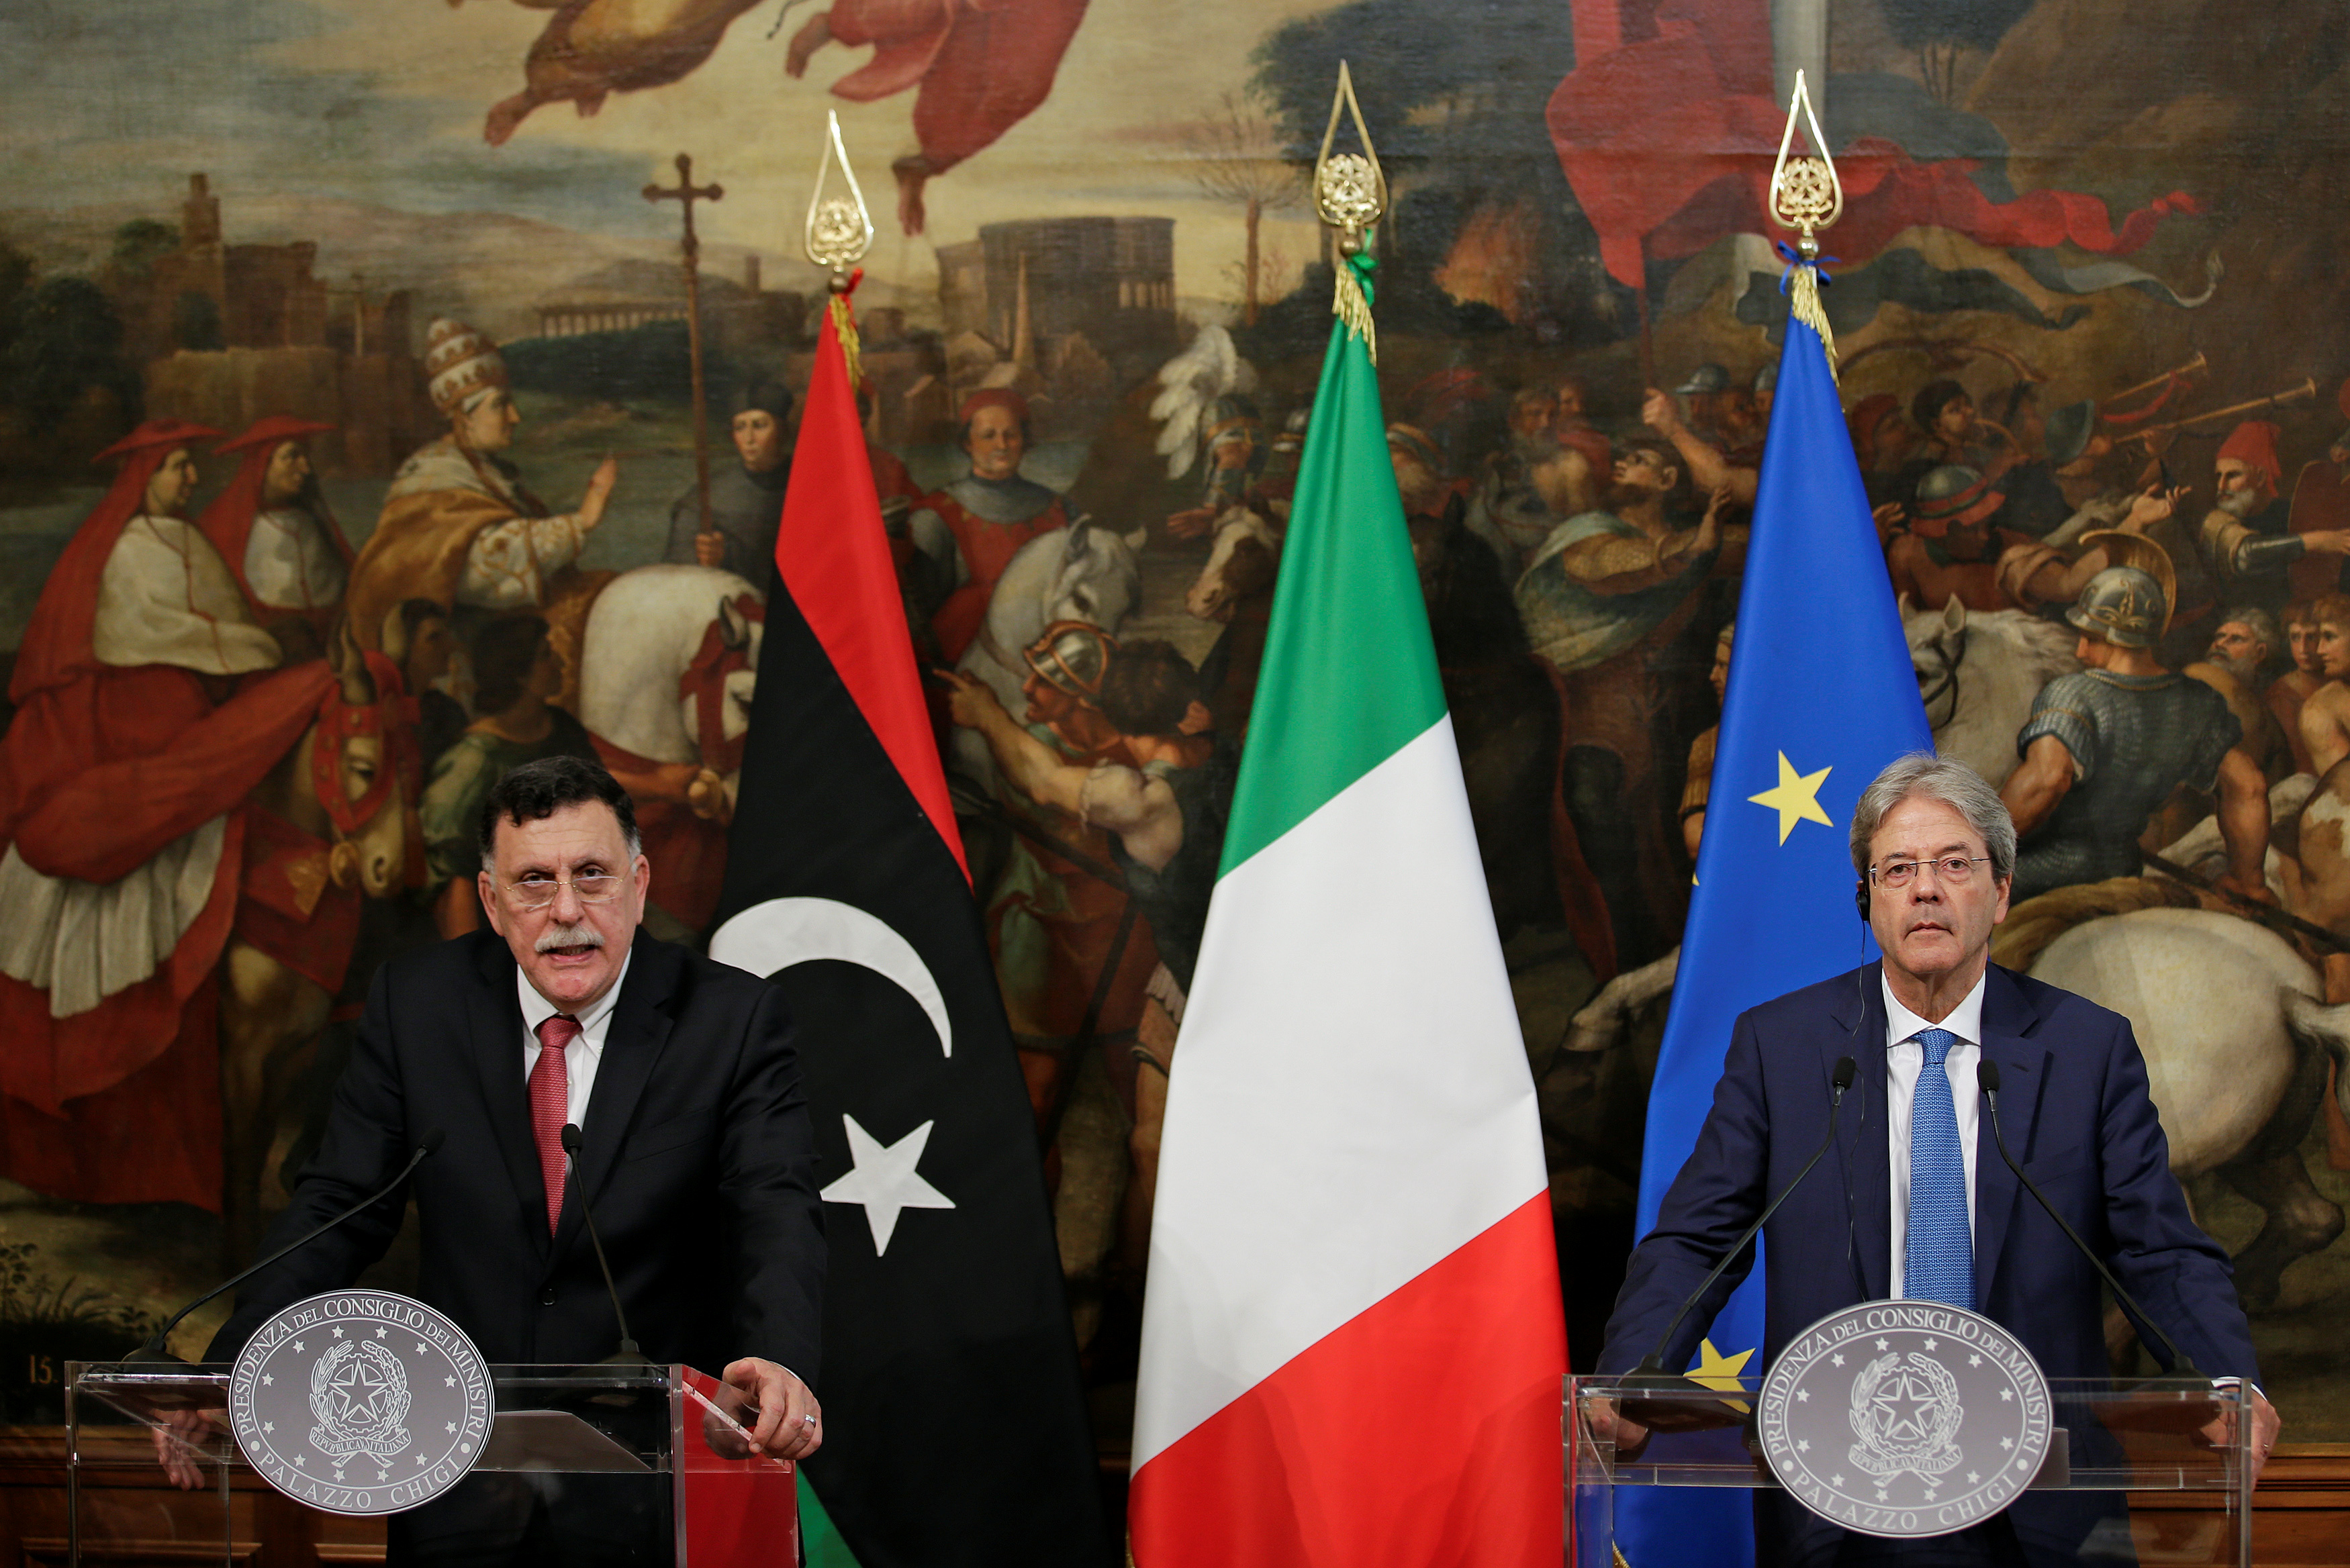 Italian Prime Minister Paolo Gentiloni (R) listens to his Libyan counterpart Fayez al-Sarraj during a news conference at Chigi Palace in Rome, Italy, July 26, 2017.